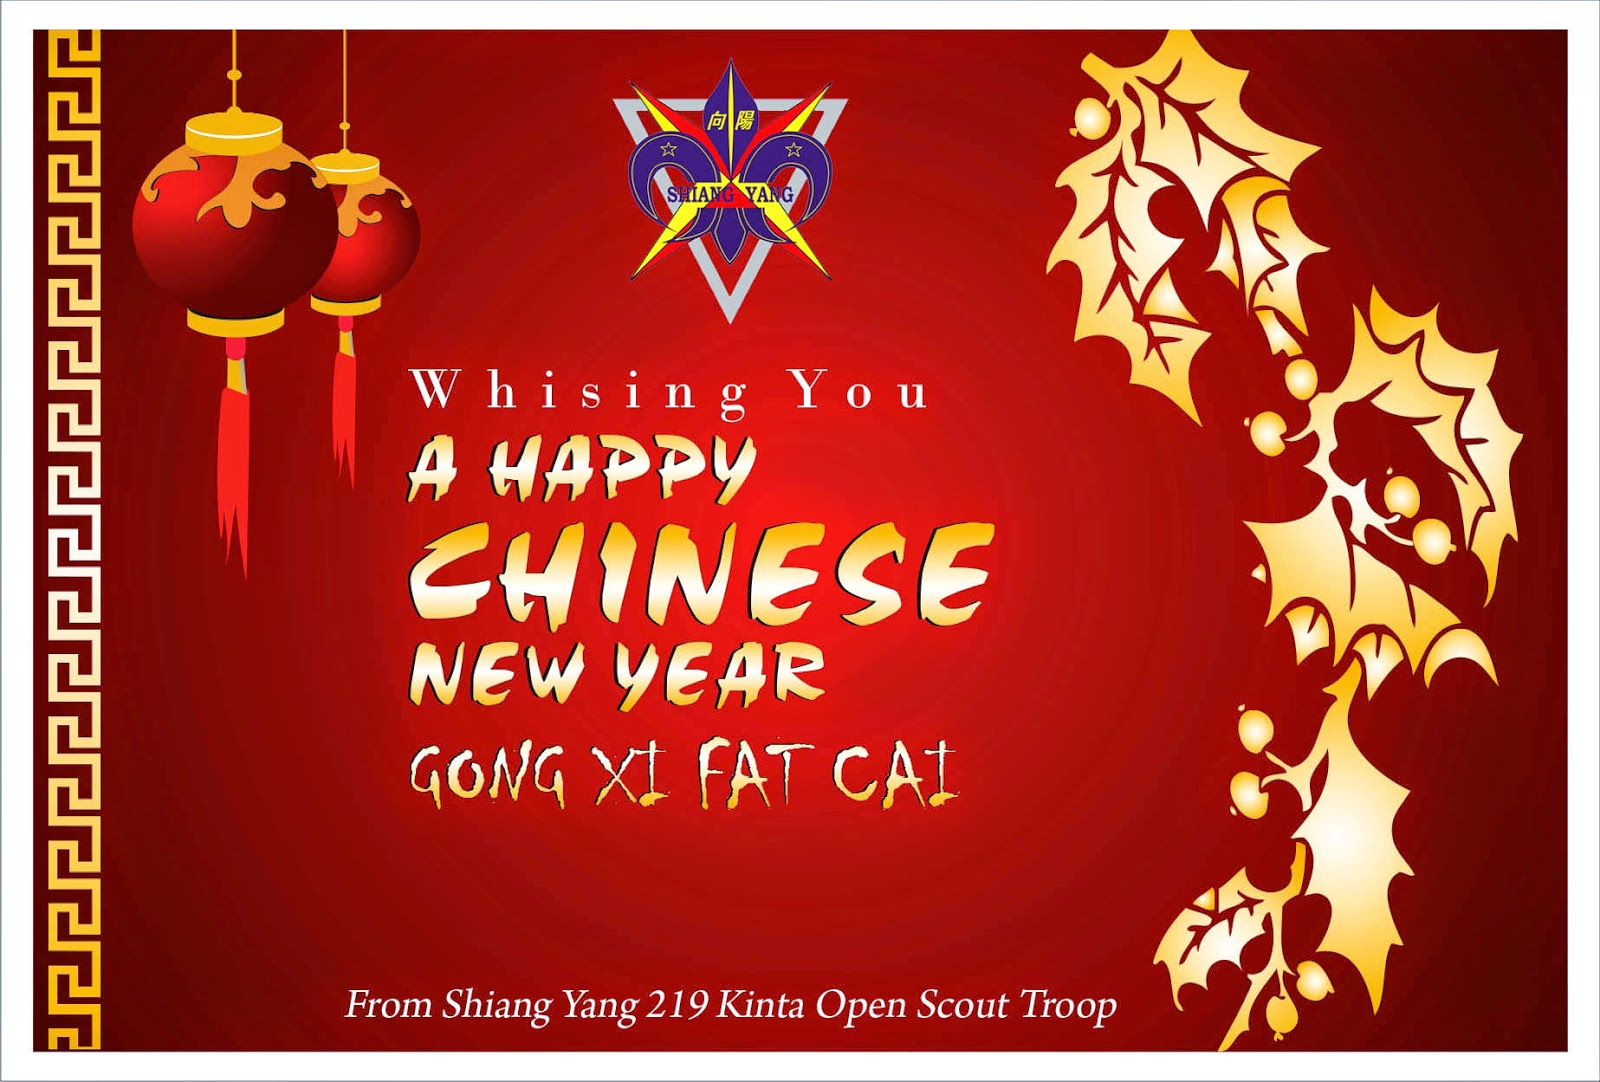 Happy new year 2015 wishes text happy new year 2015 happy new year 2015 wishes text m4hsunfo